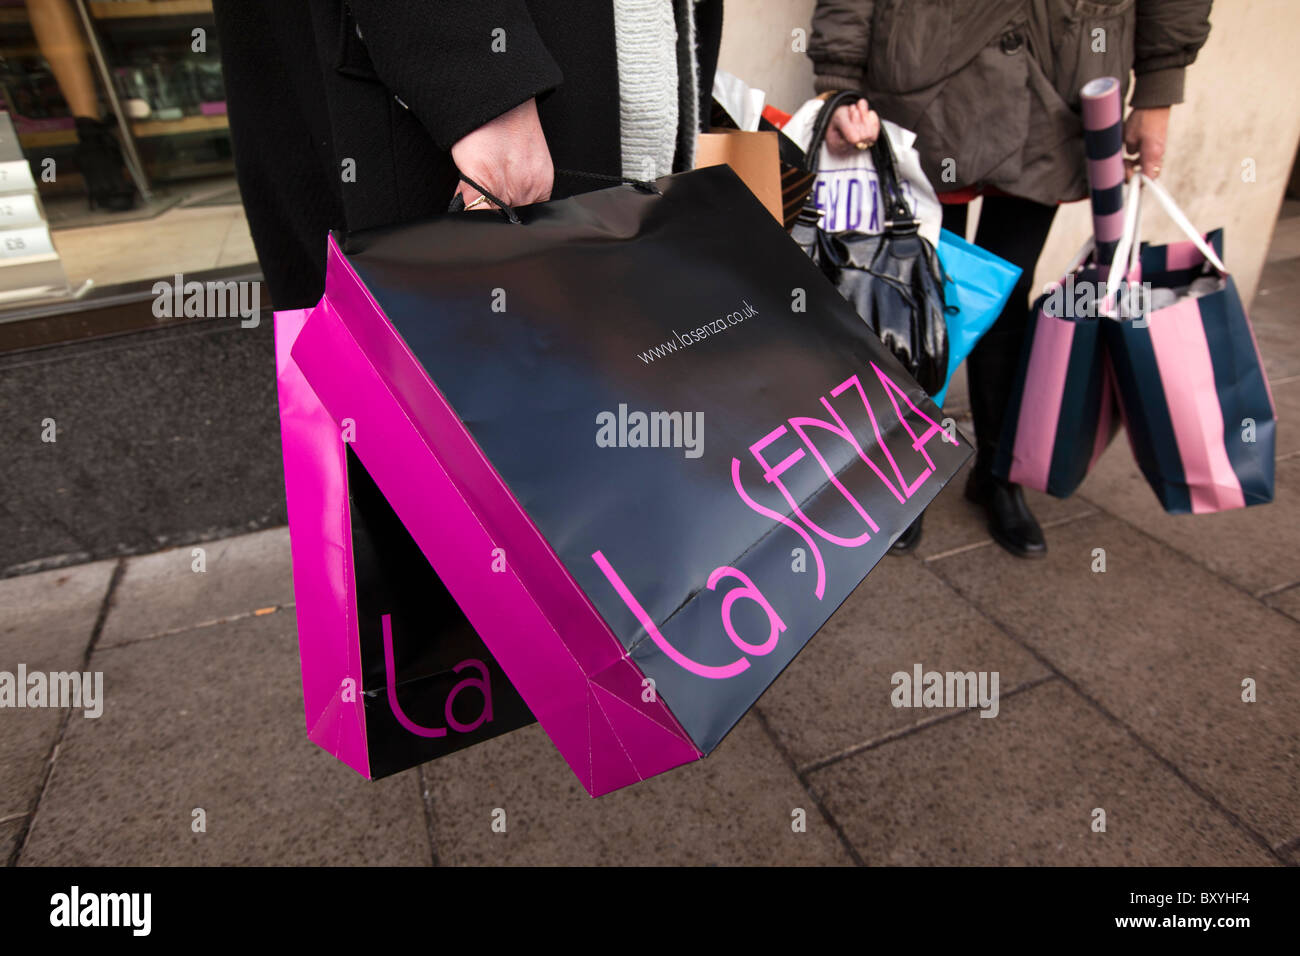 UK, England, Yorkshire, Leeds, City Centre, shoppers holding carrier bags full of Christmas shopping - Stock Image